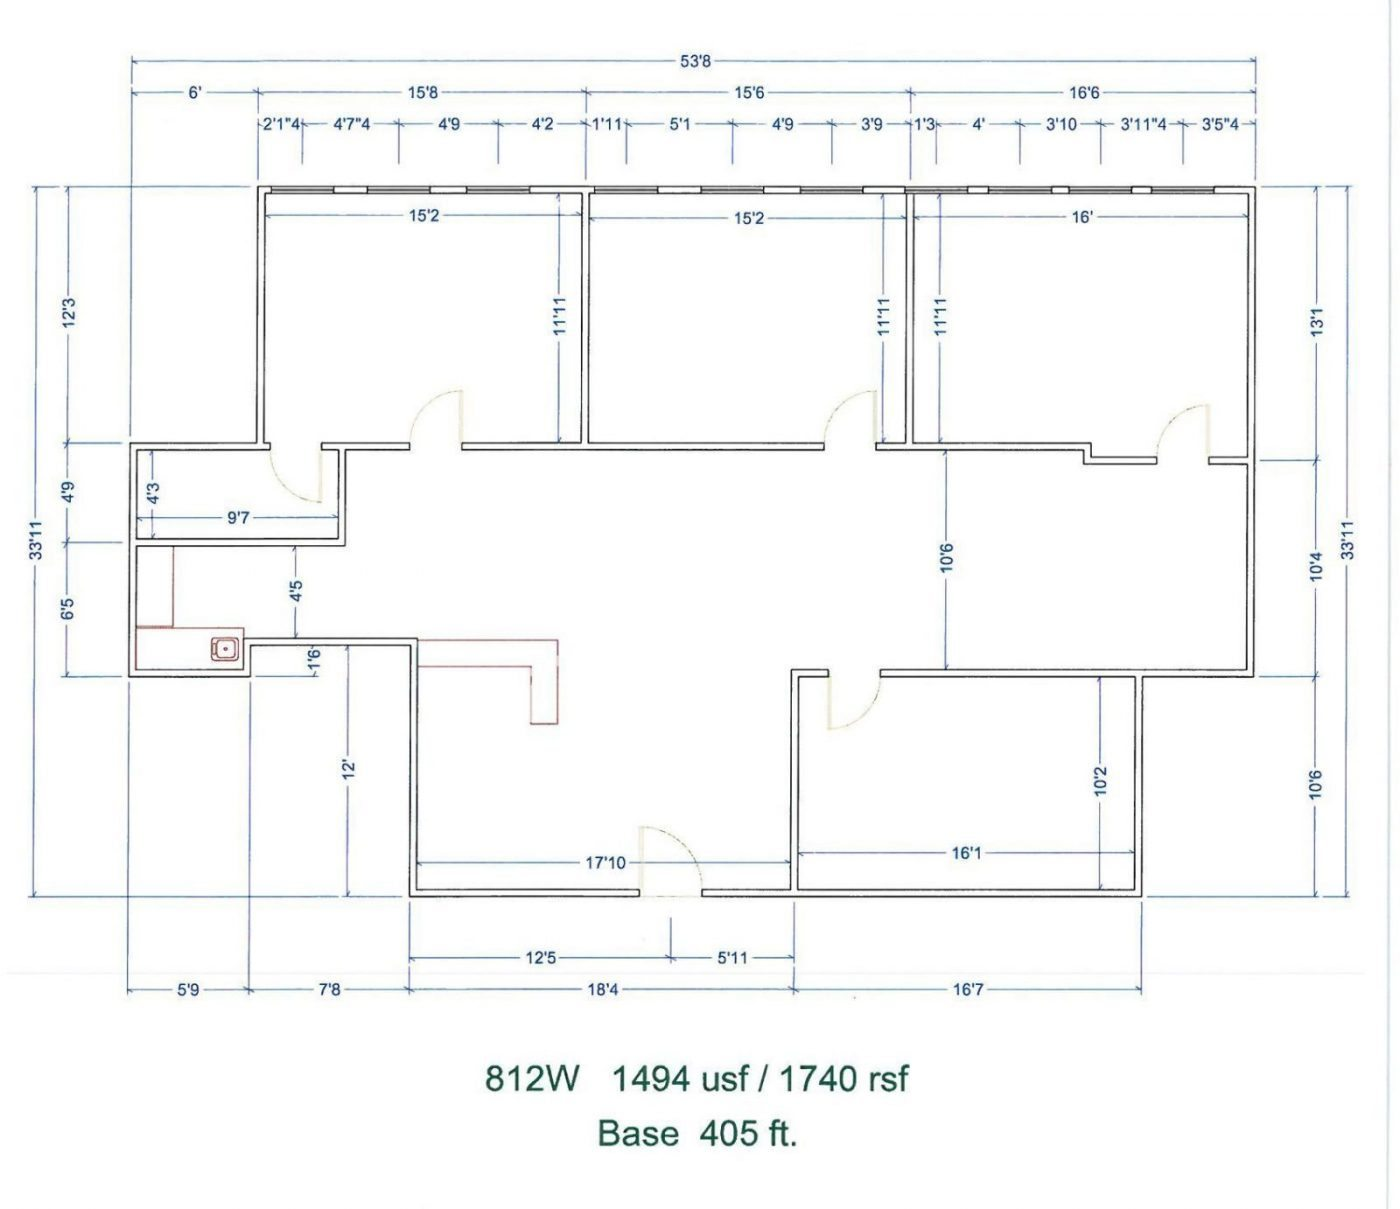 Floor Plan for unit 812W at 15565 Northland Dr Southfield, MI 48075